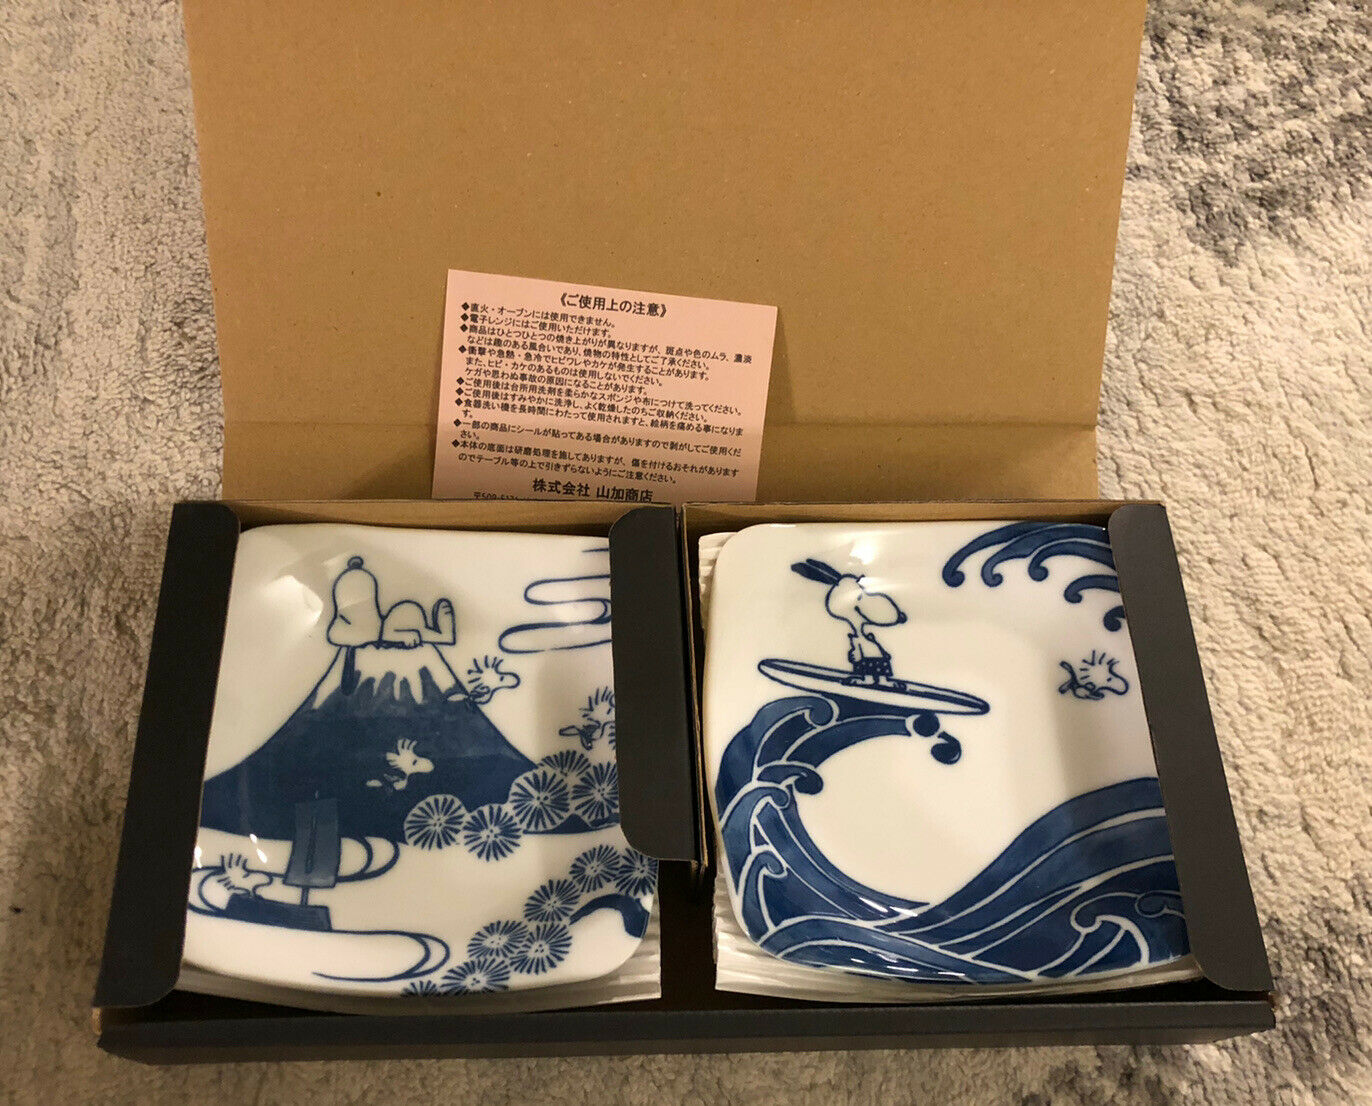 New PEANUTS Peanuts Snoopy Dyed Square Dish Set of 5  F//S from Japan